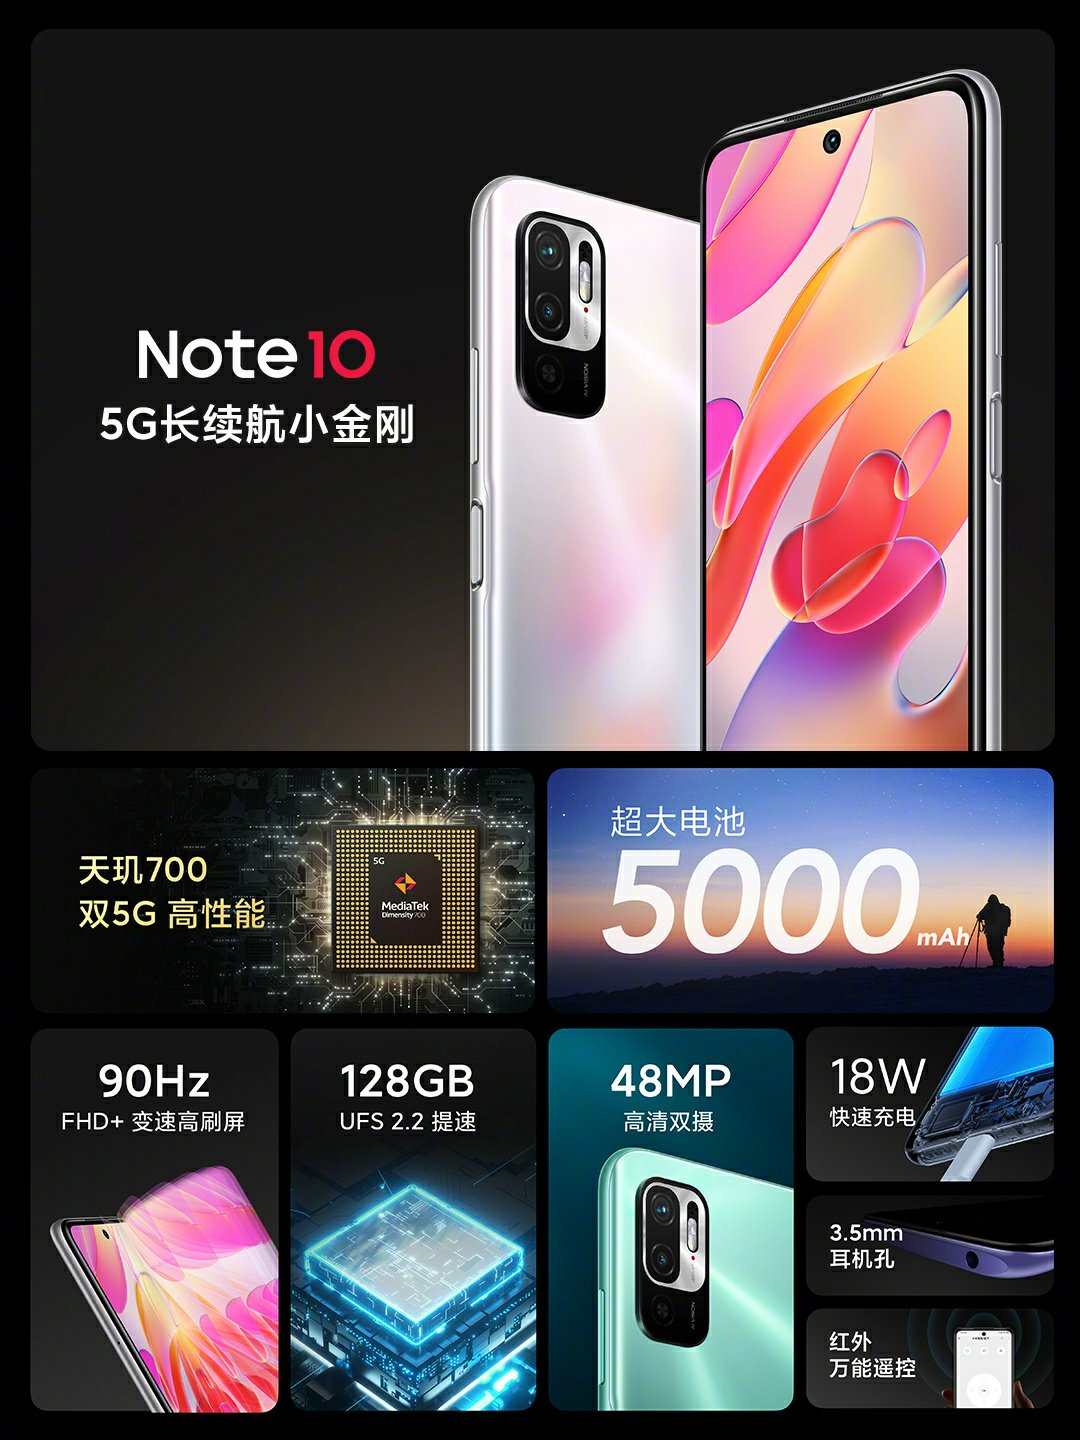 Redmi Note 10 5G Specifications